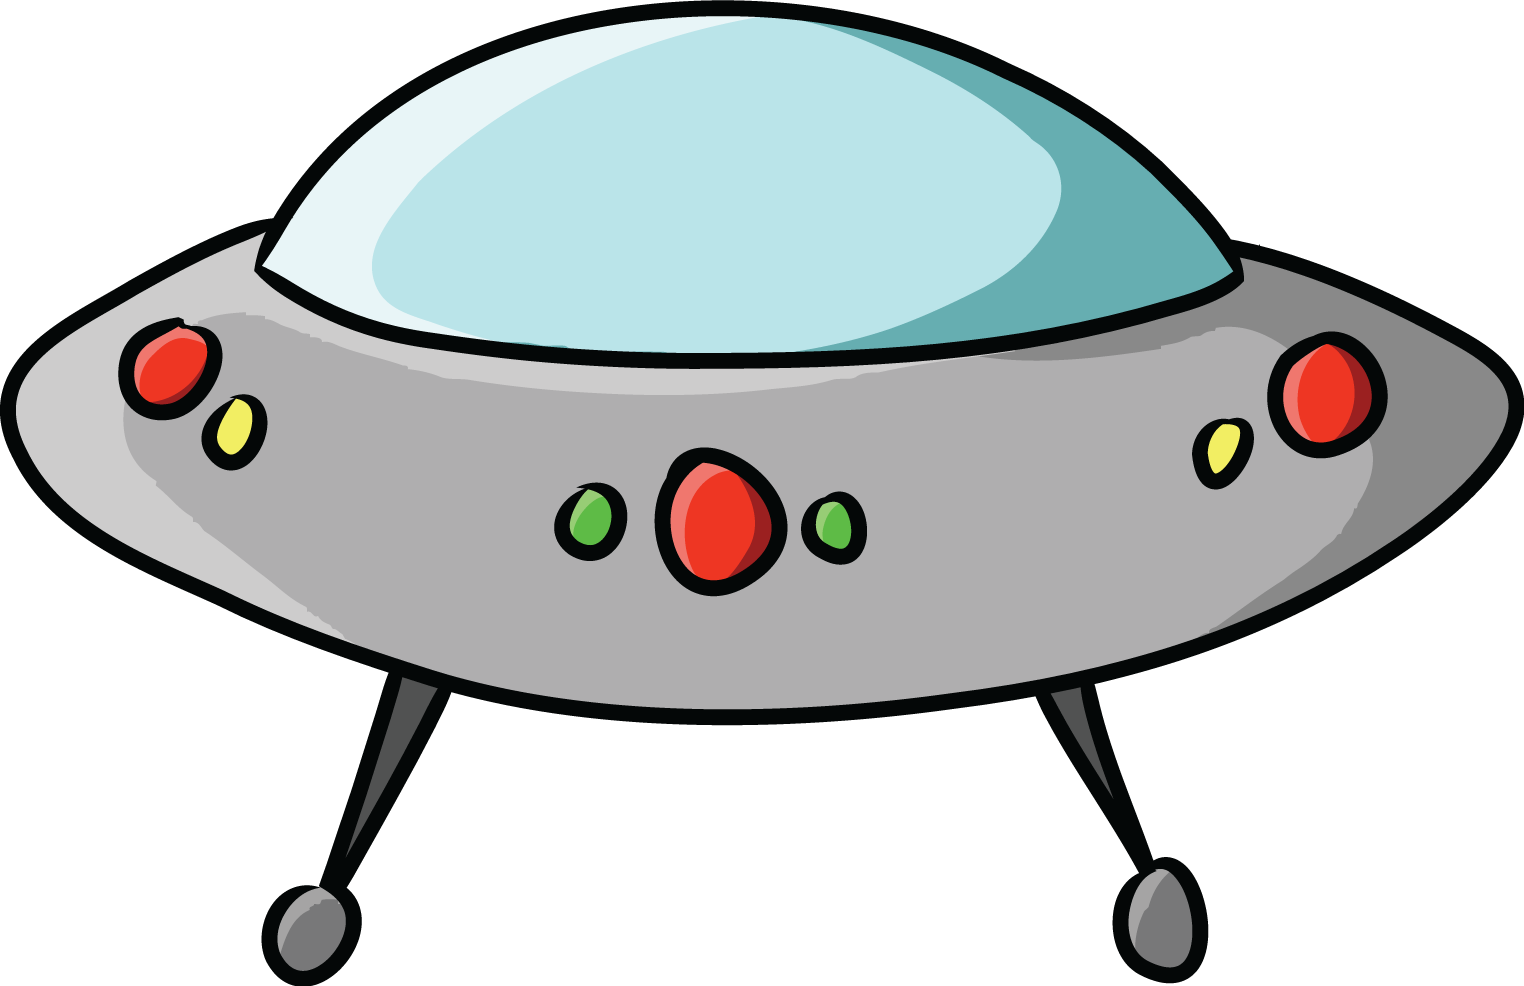 Free To Use Public Domain Flying Saucer -Free to Use Public Domain Flying Saucer Clip Art-4